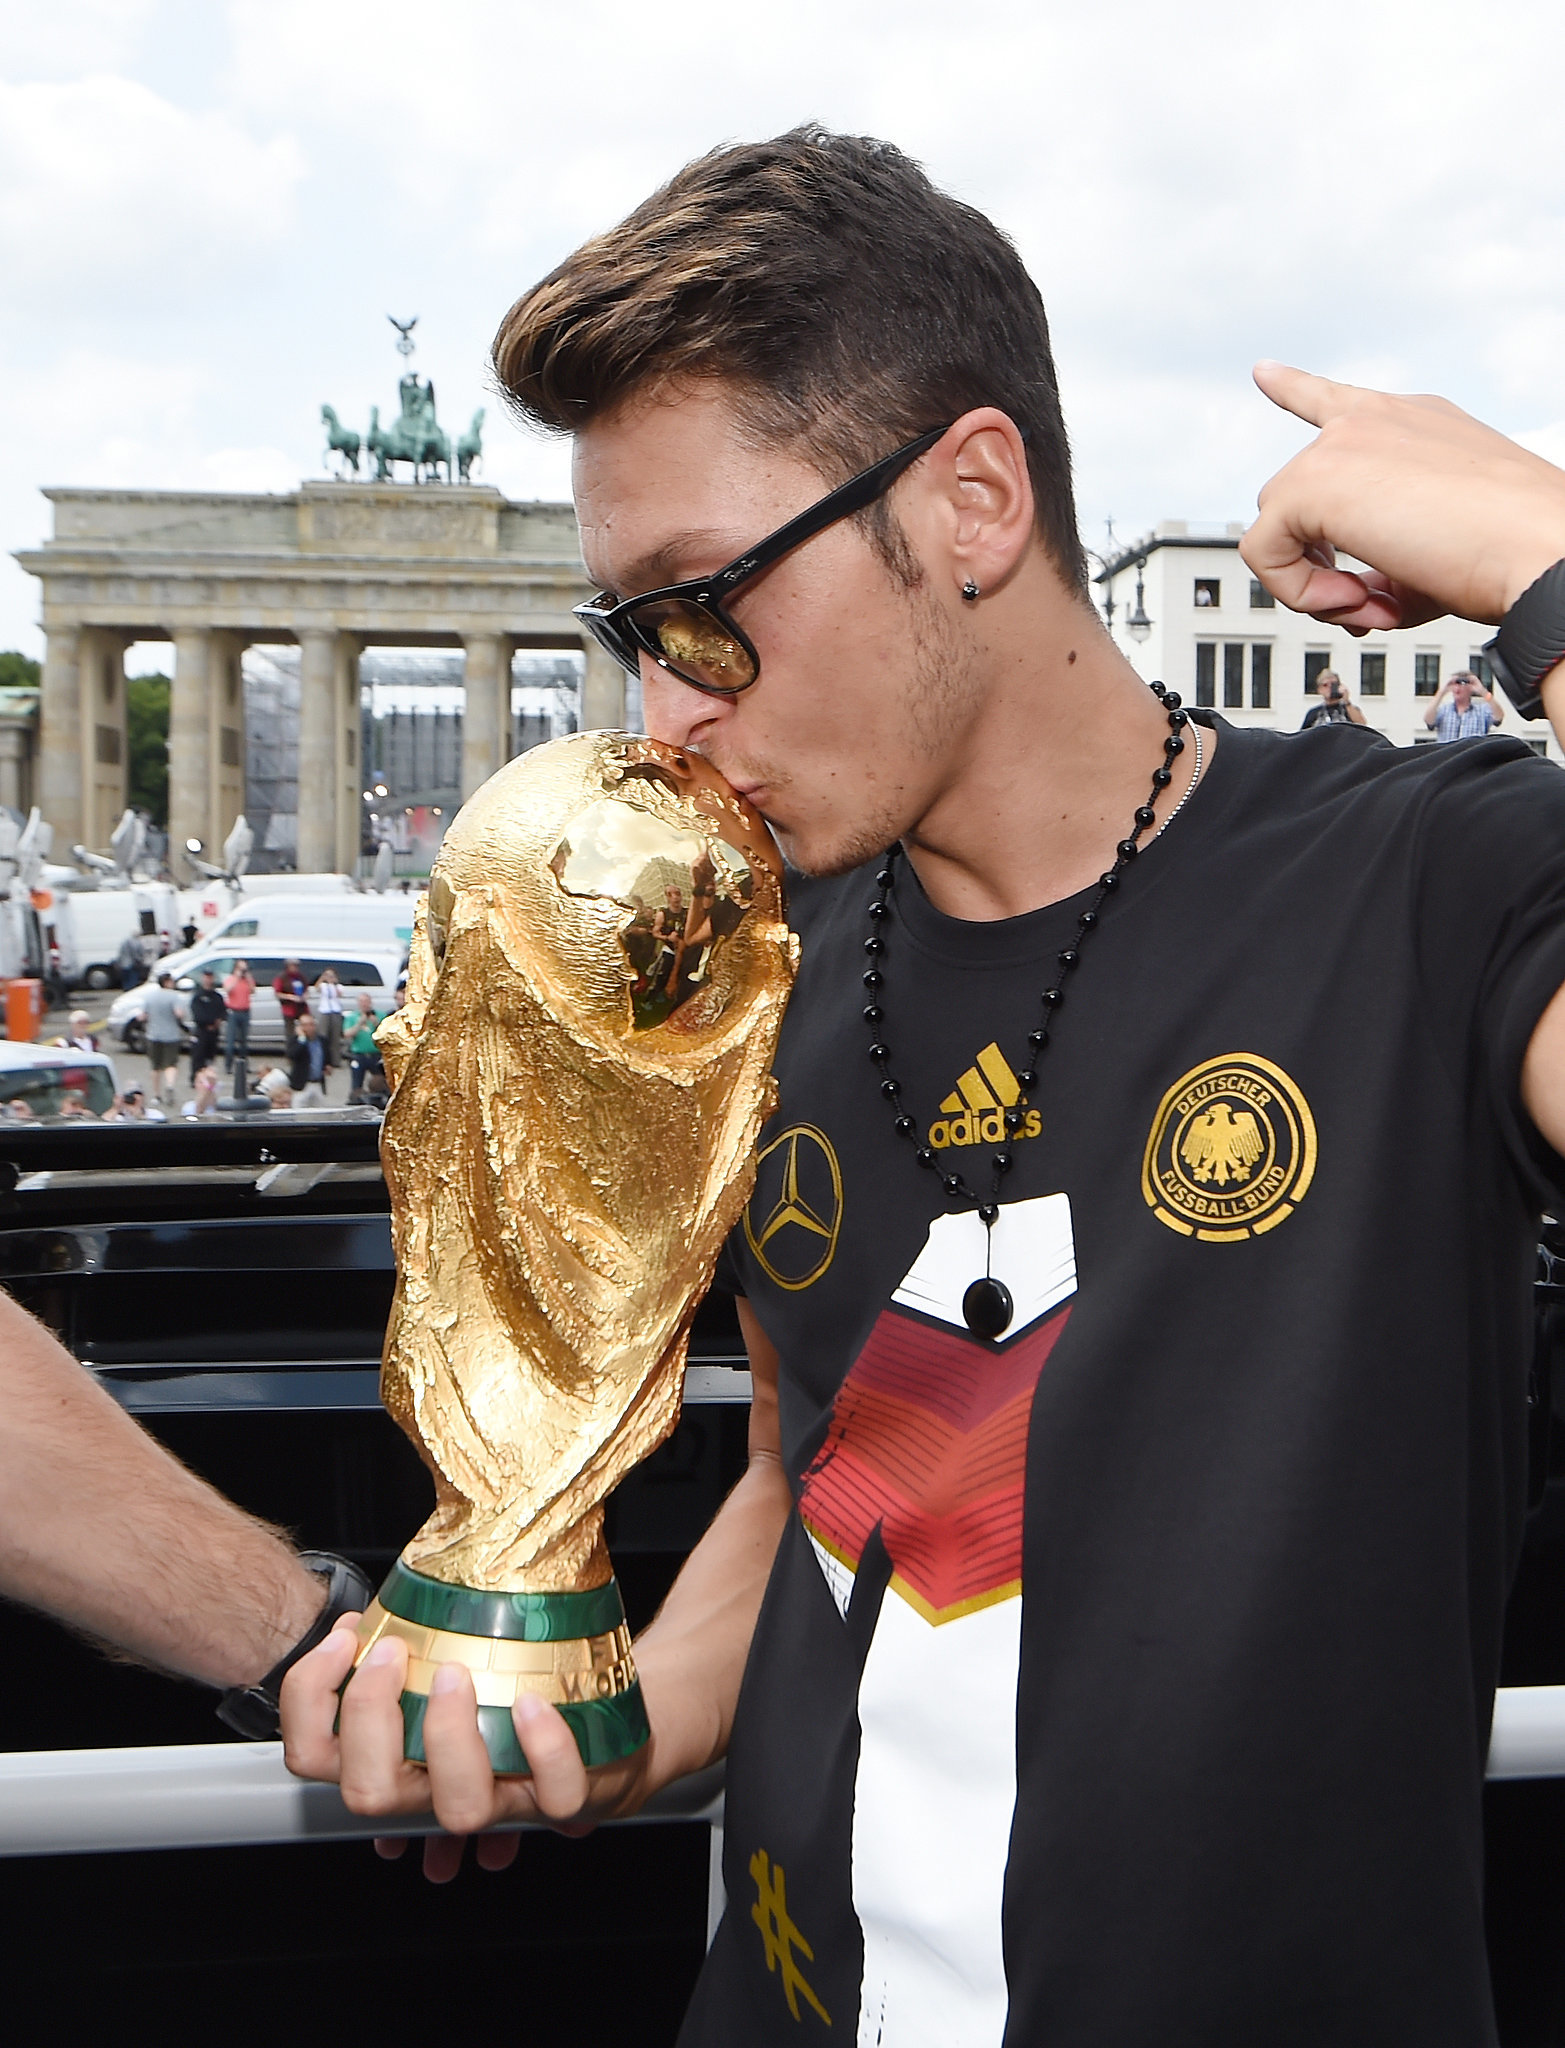 Germany's World Cup Team Really Knows How to Celebrate